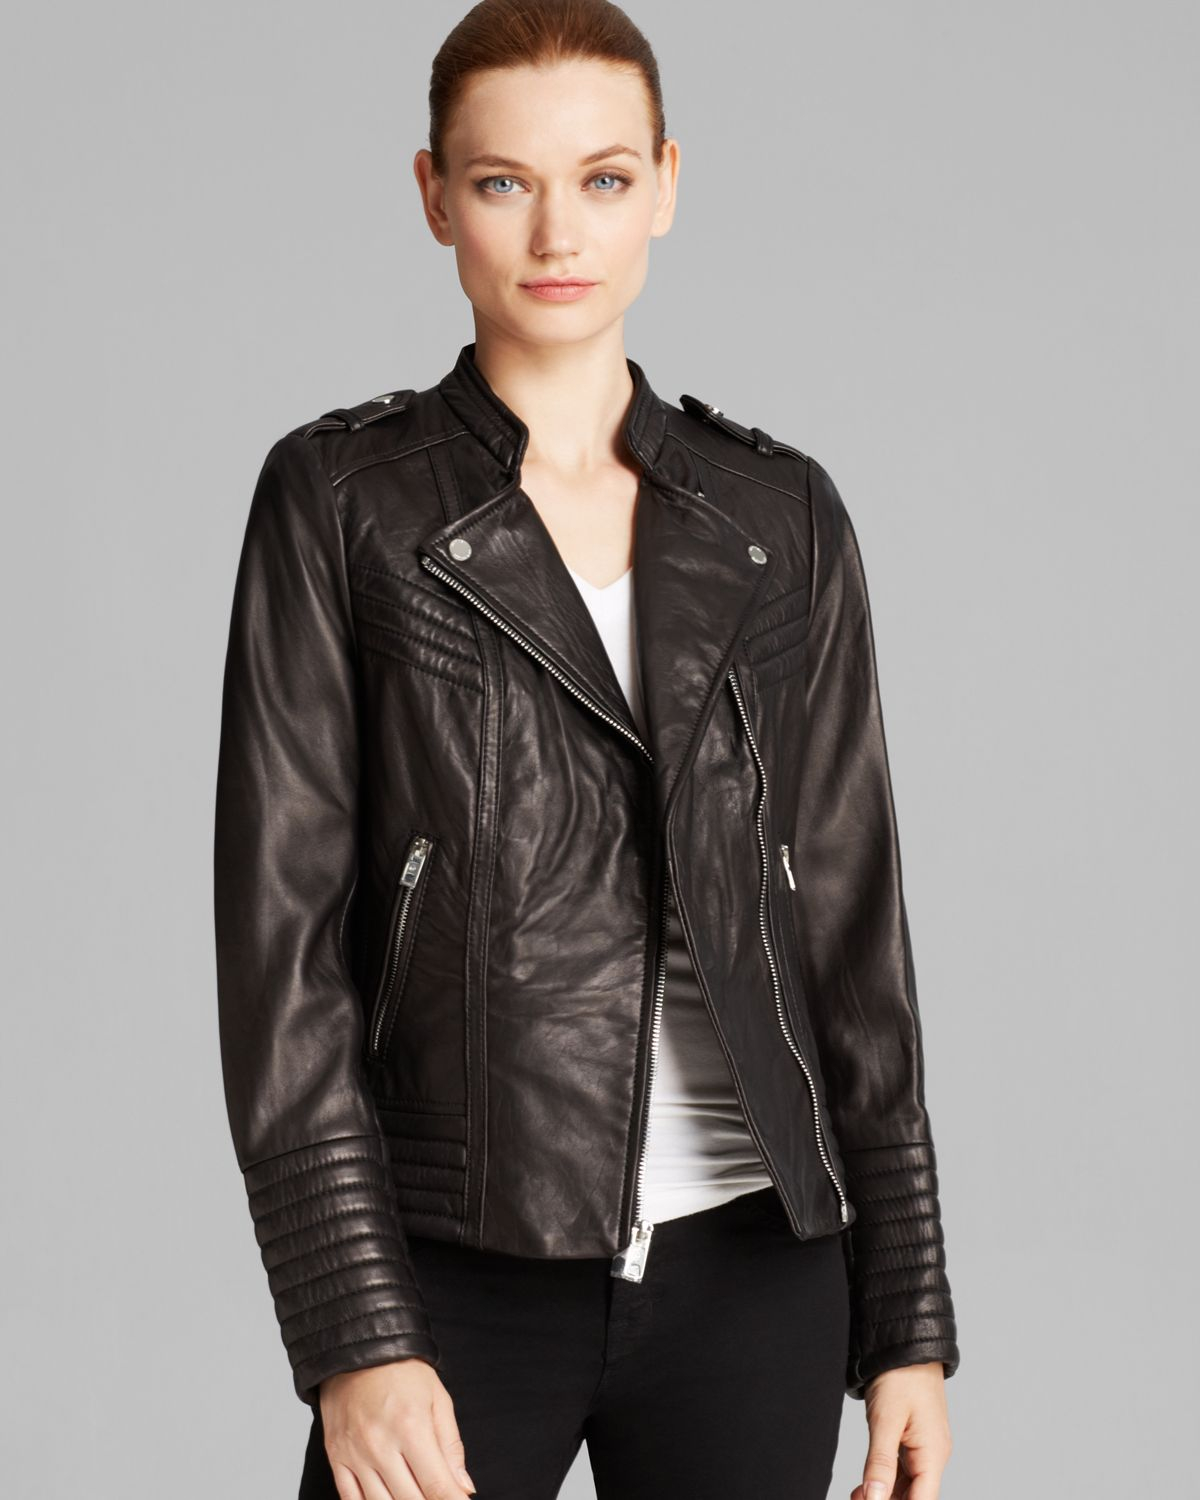 Michael michael kors Jacket - Asymmetric Moto Leather in Black | Lyst